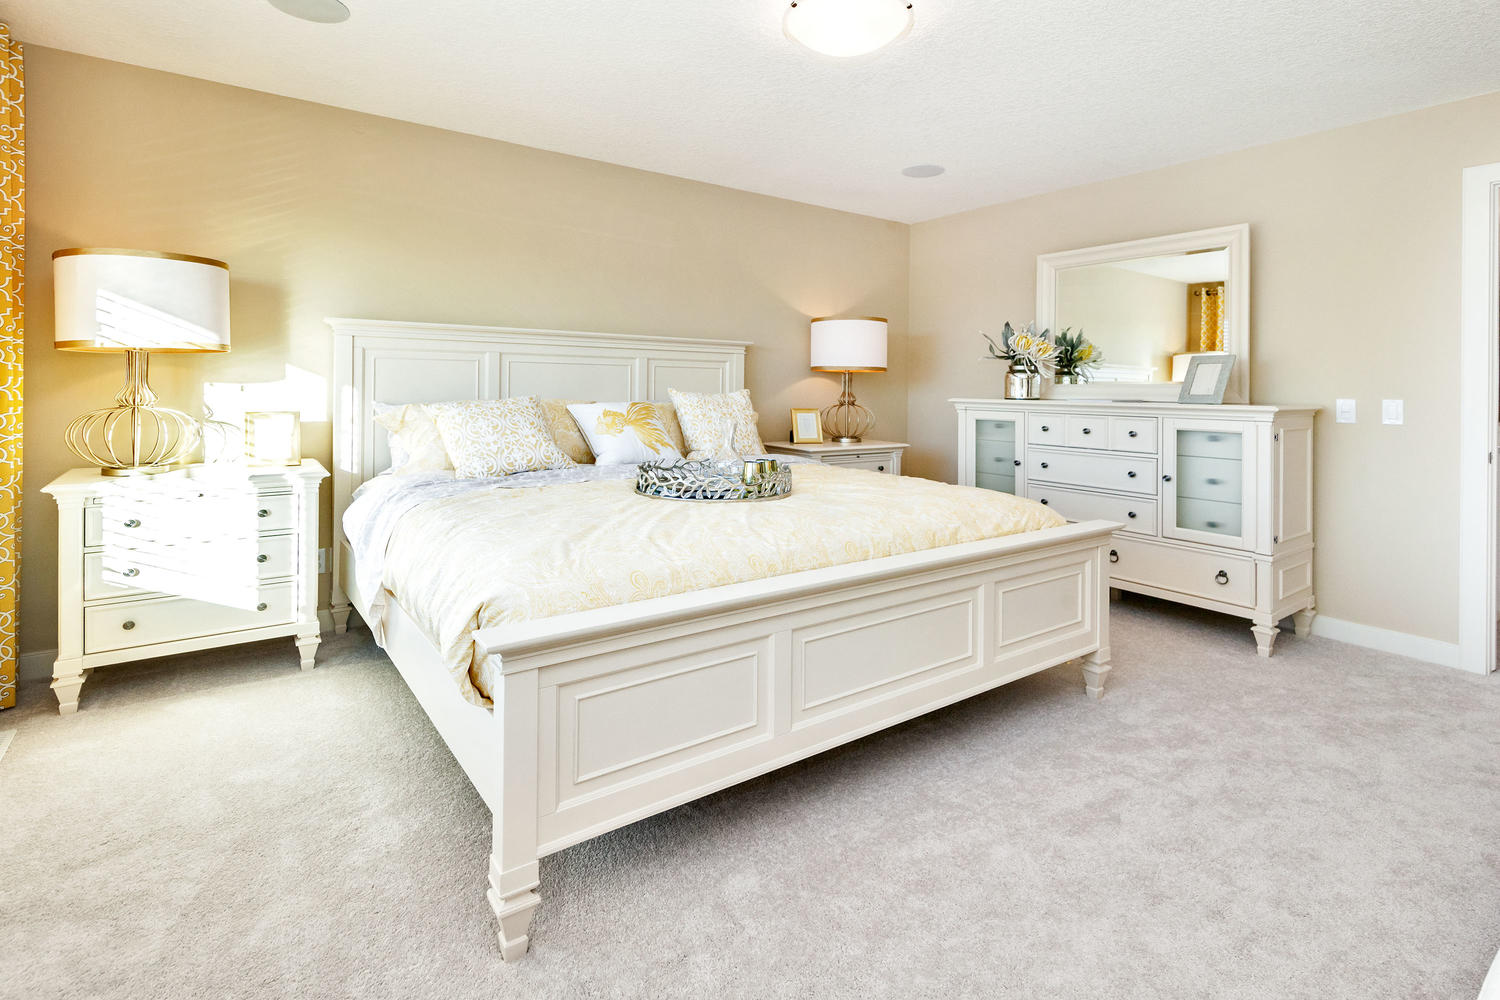 master bedroom with white bedroom furniture of a pacesetter front drive show home.